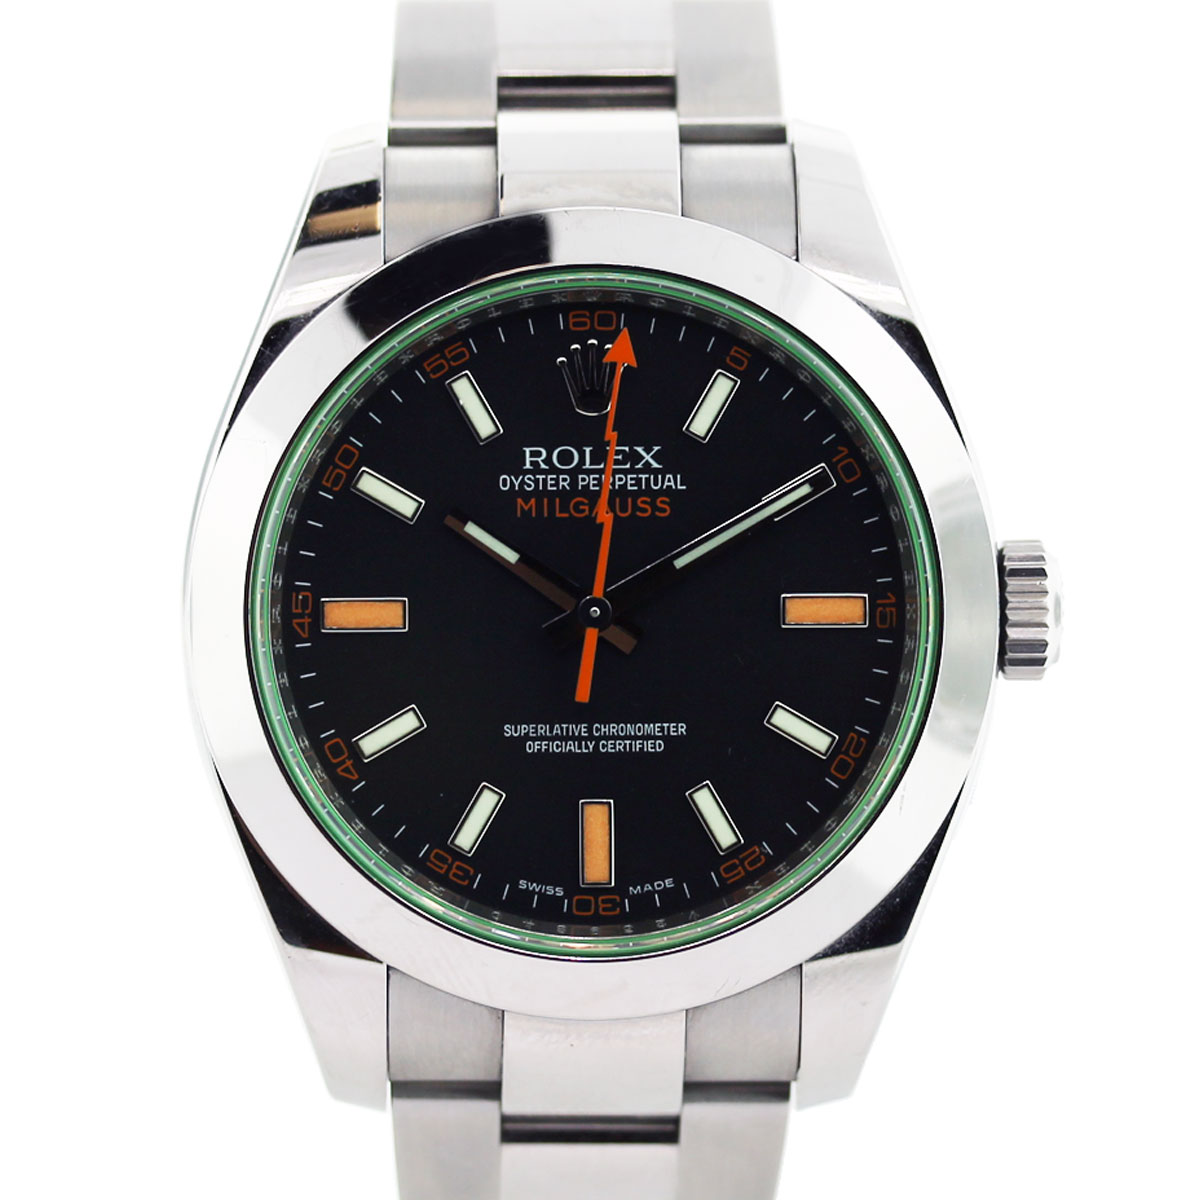 Rolex Milgauss 116400GV Green Crystal 50th Anniversary Edition